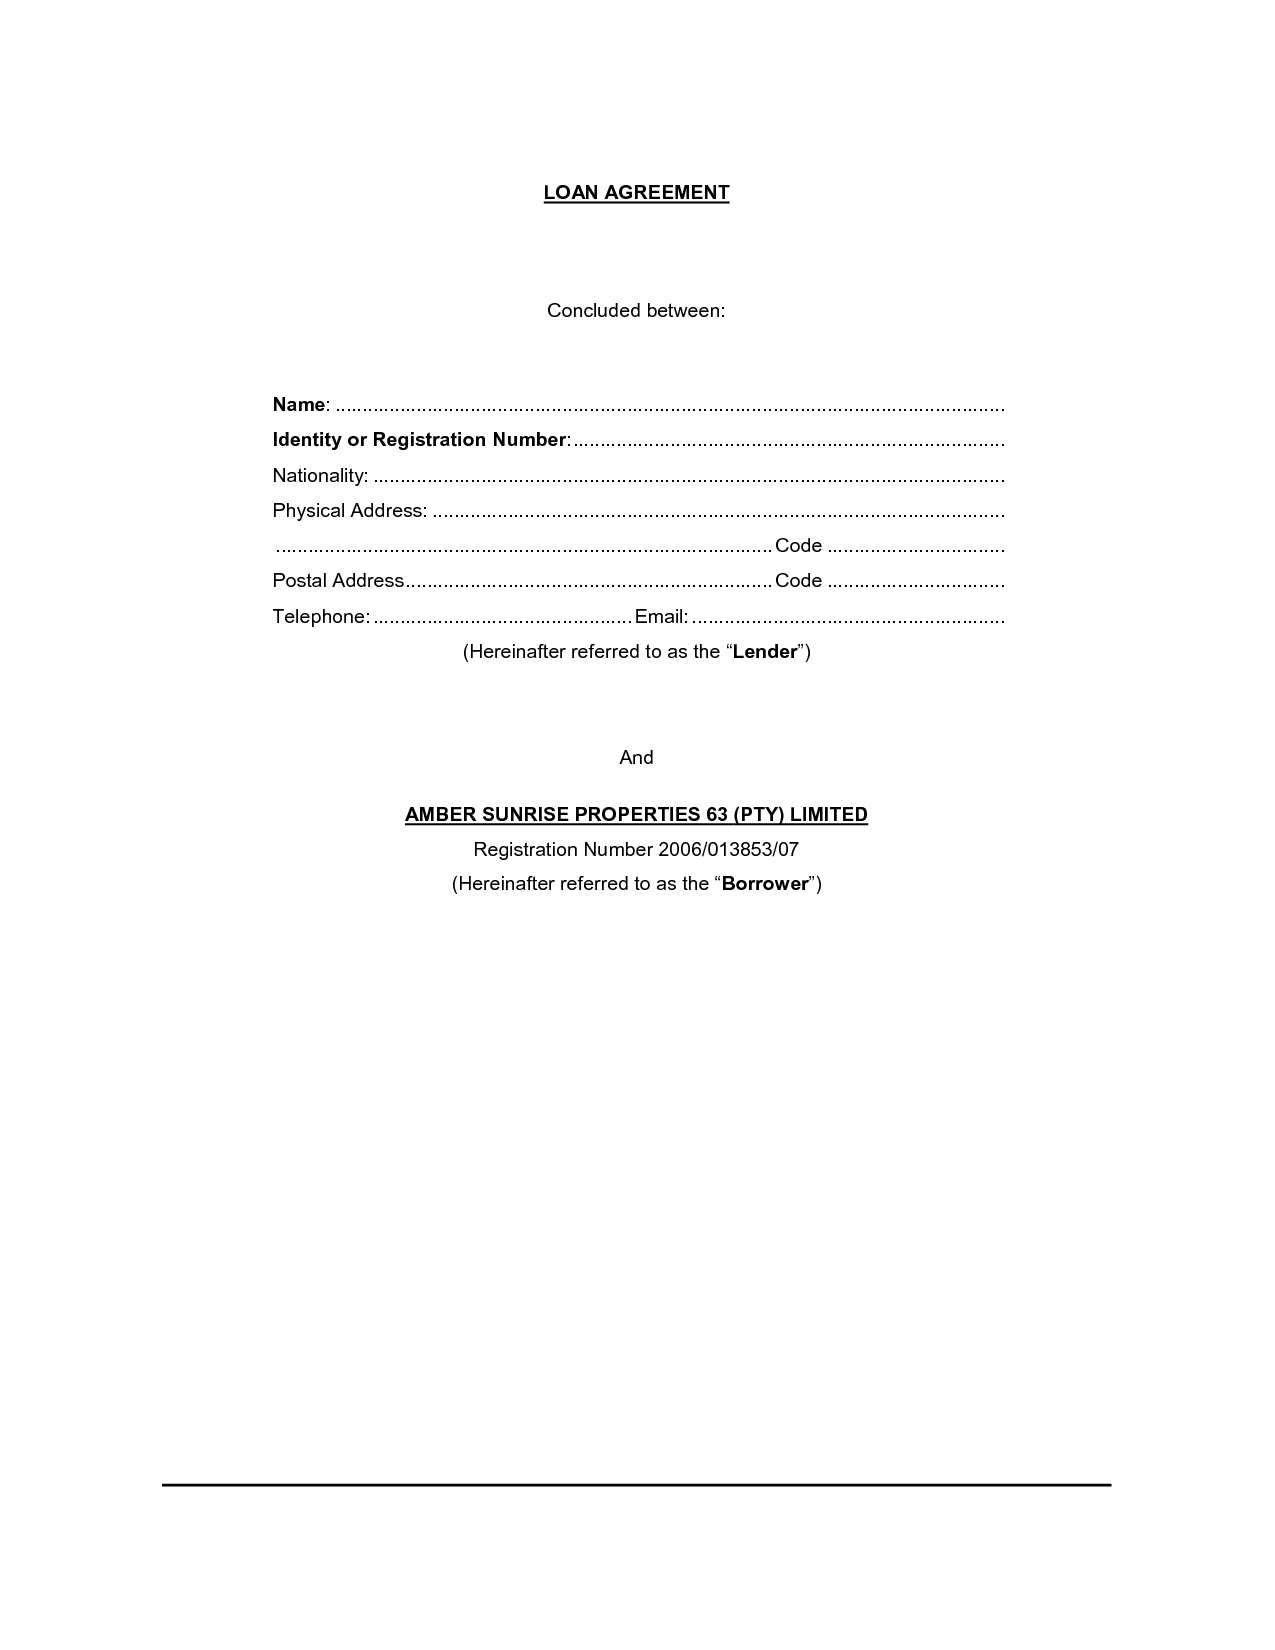 Printable Loan Agreement Form Angel Fdrawdy Angelfdrawdy On Pinterest